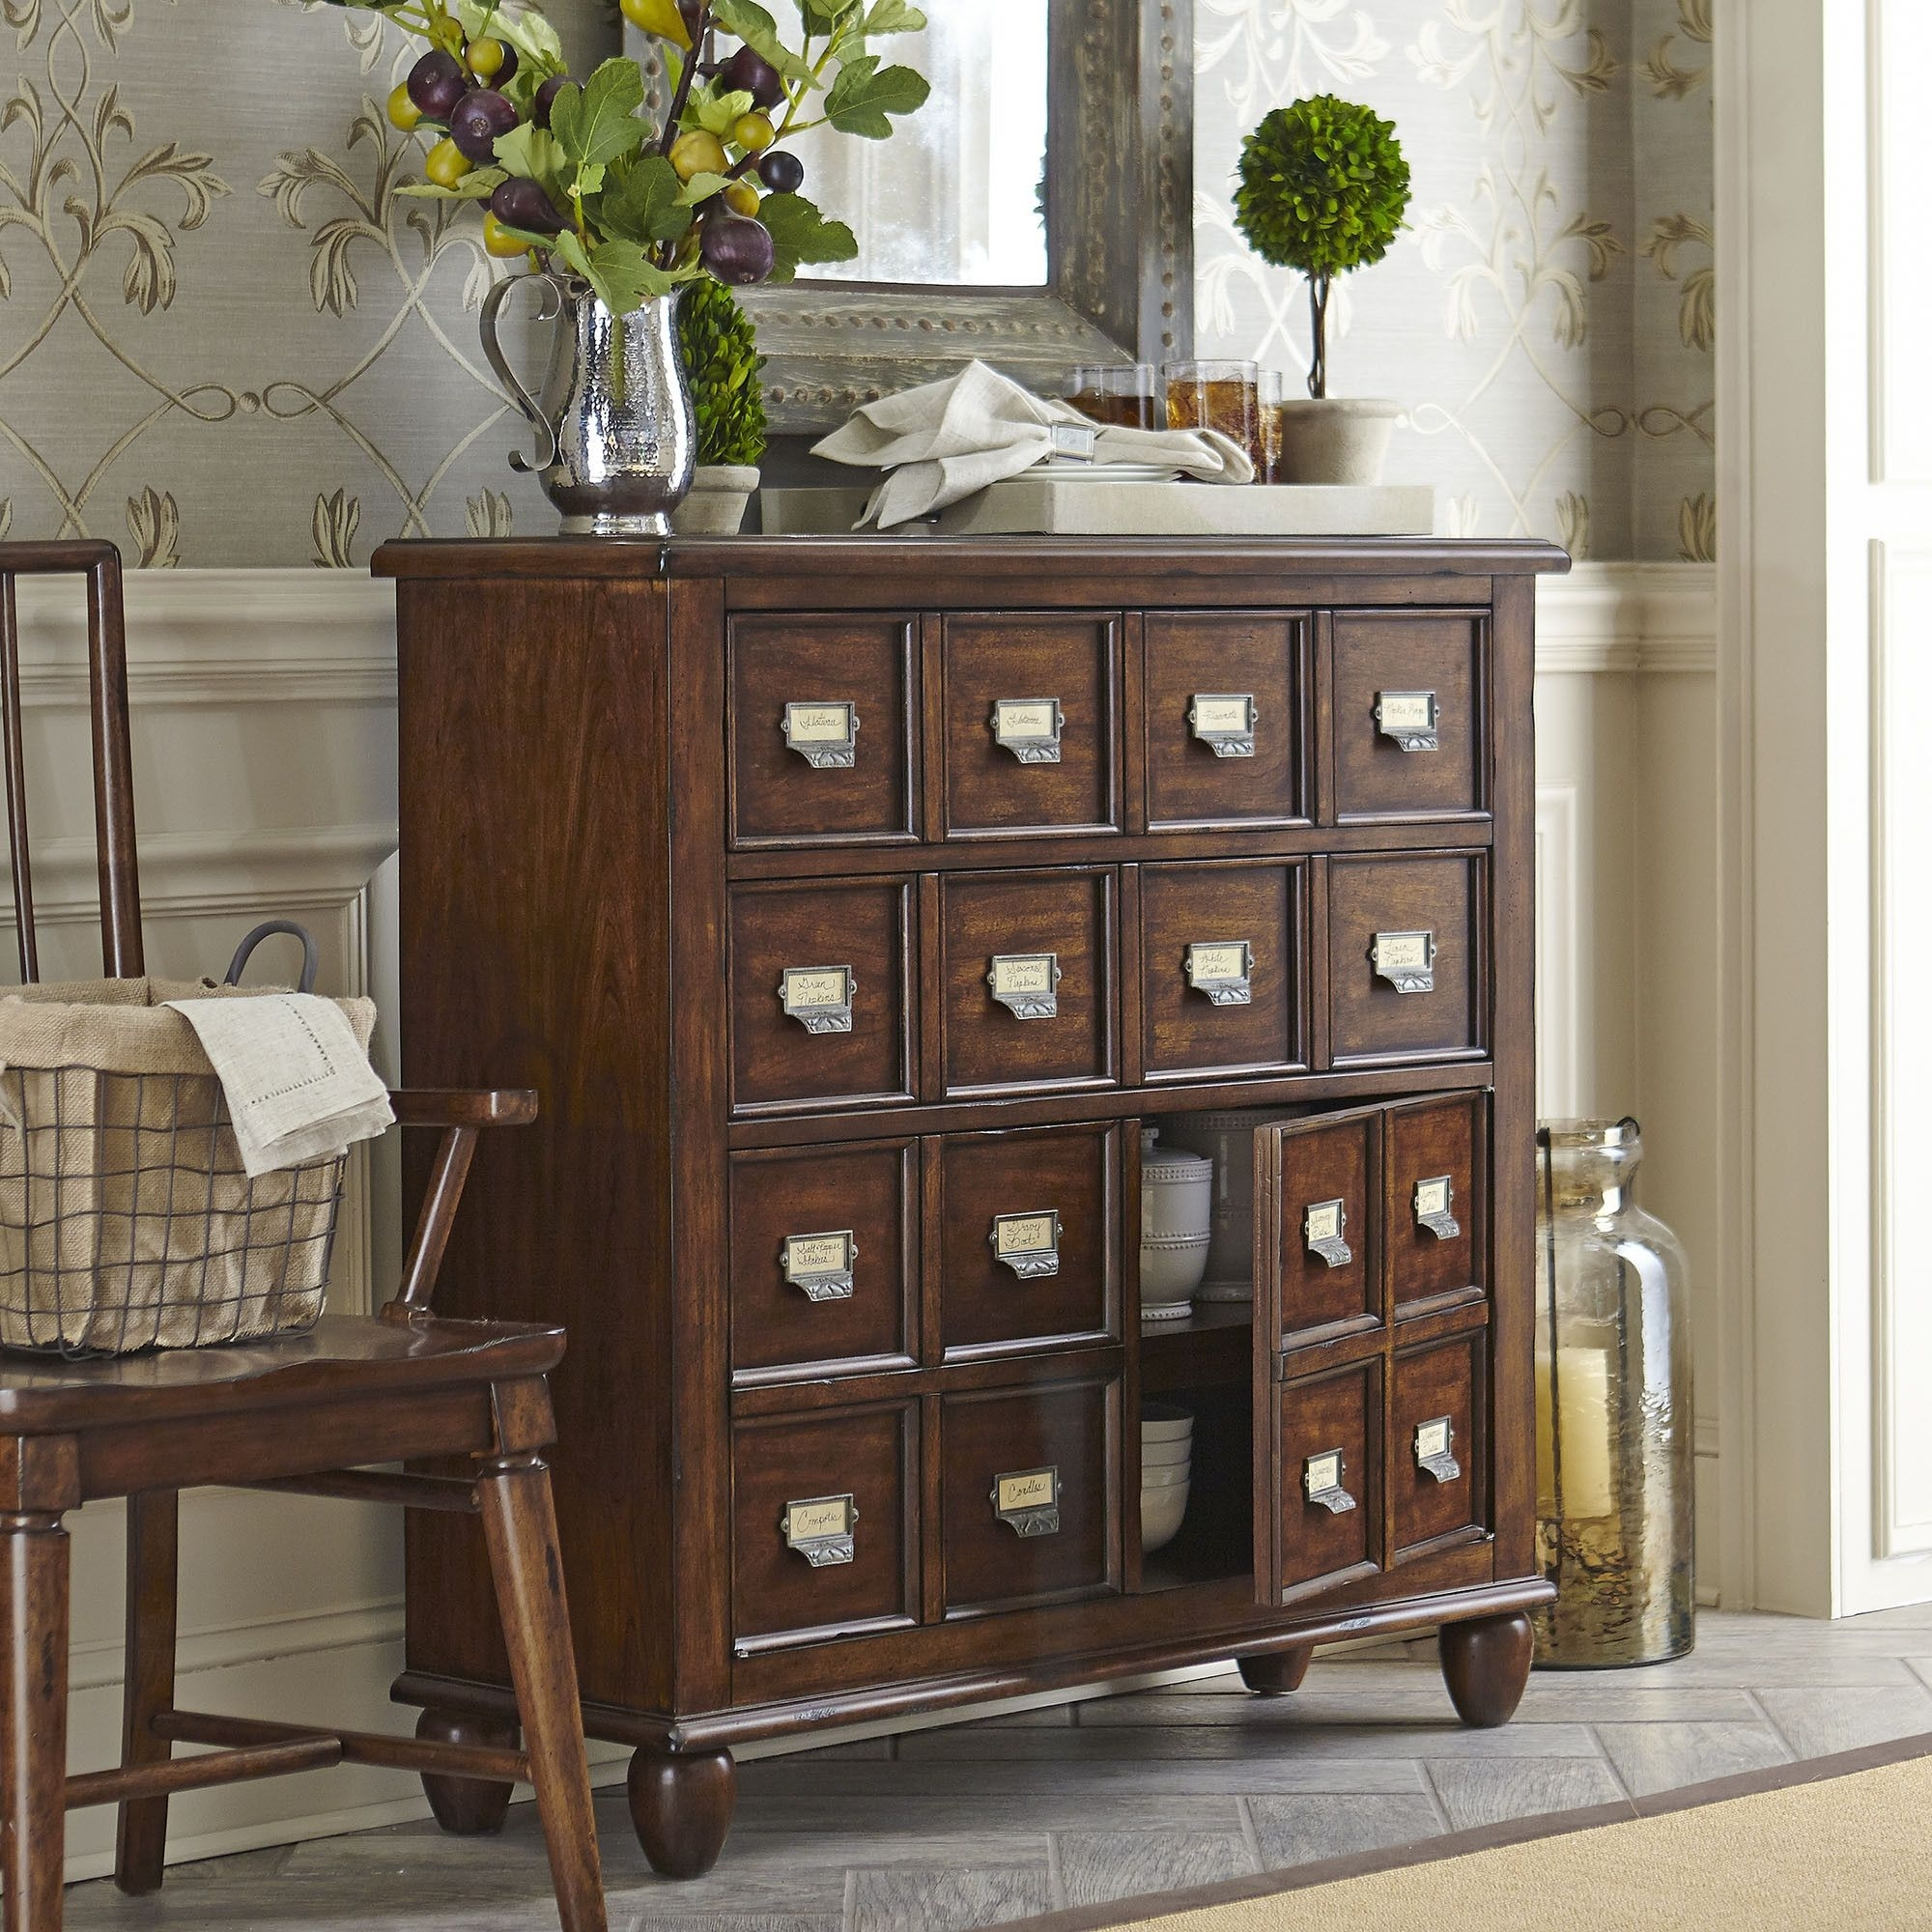 Apothecary Cd Cabinet Ideas On Foter